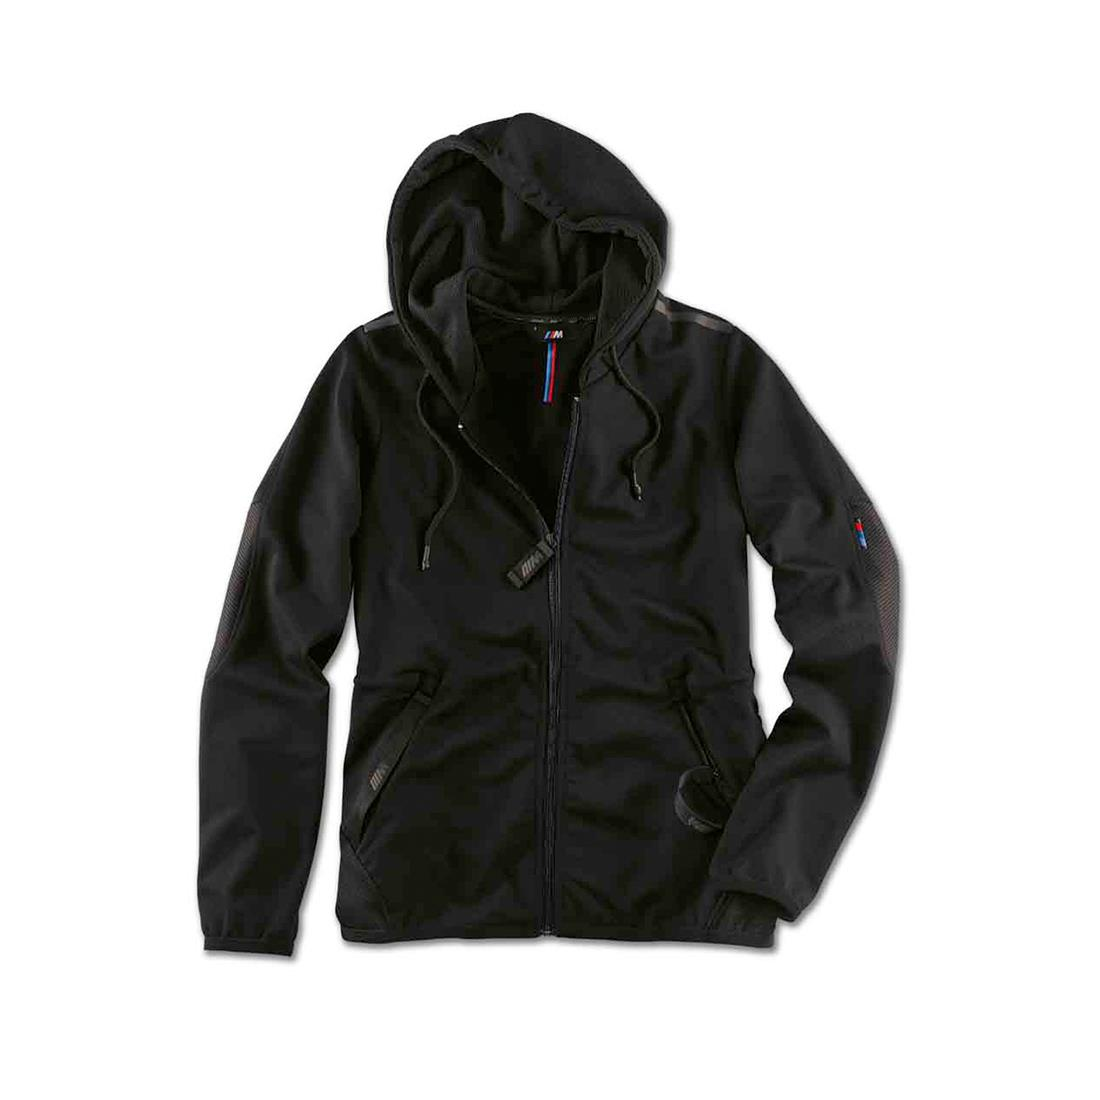 BMW M SWEATJACKET WOMEN